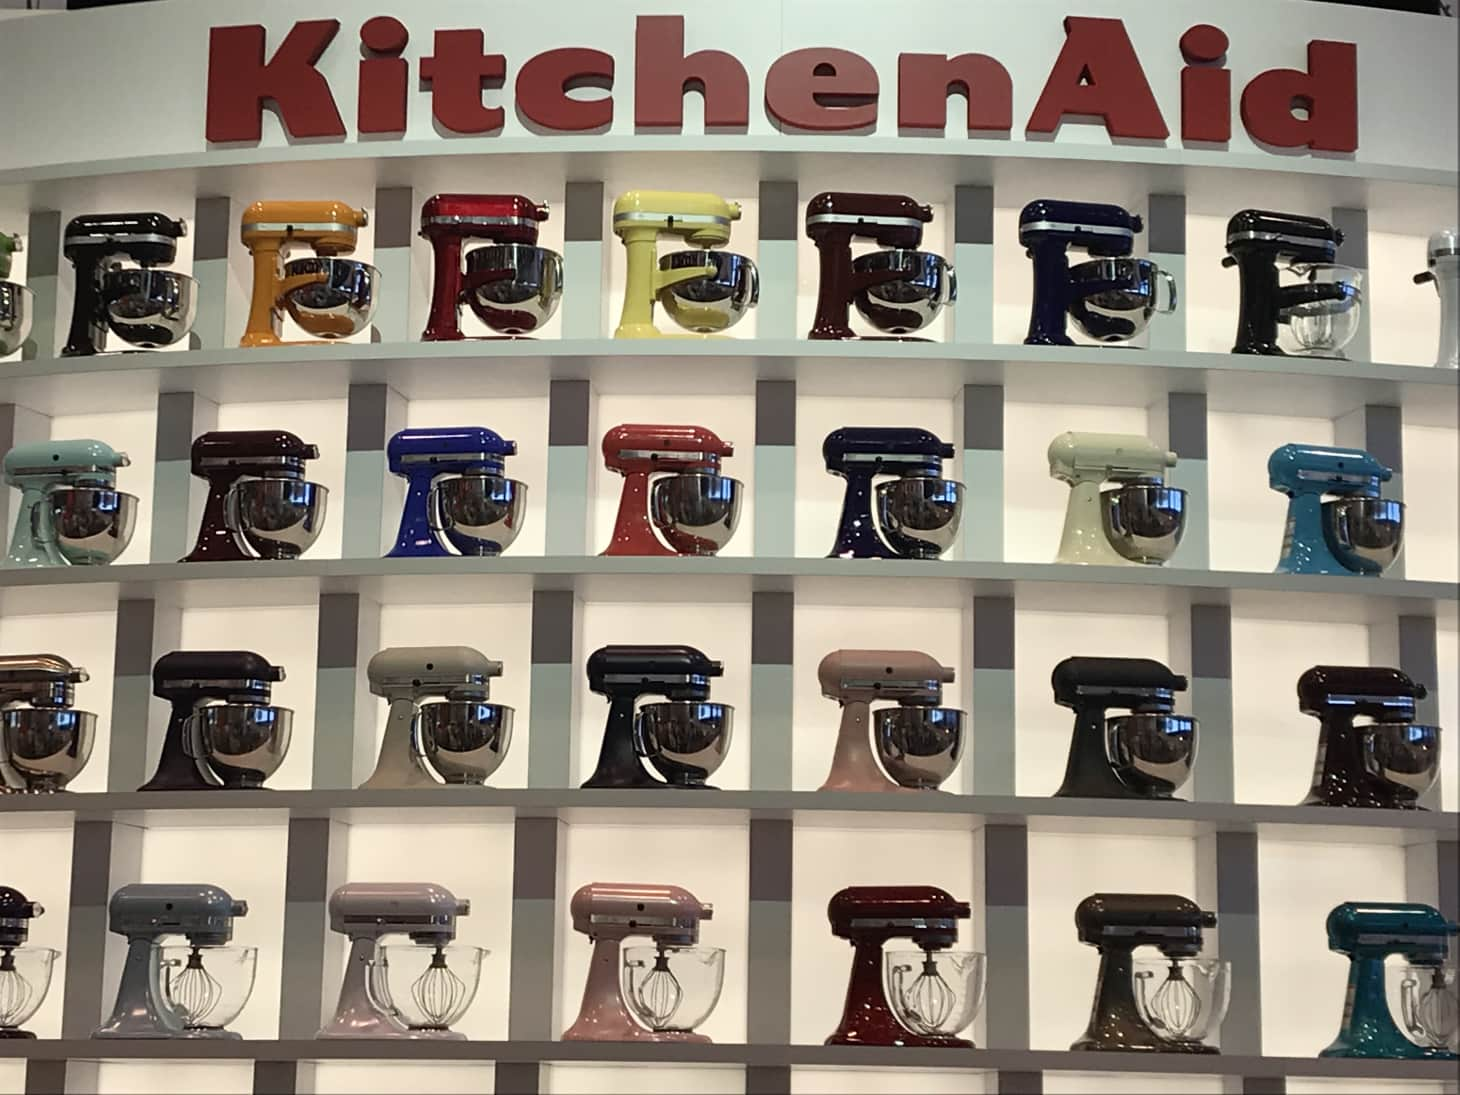 Sungard Exhibition Stand Mixer : New kitchenaid stand mixer colors kitchn